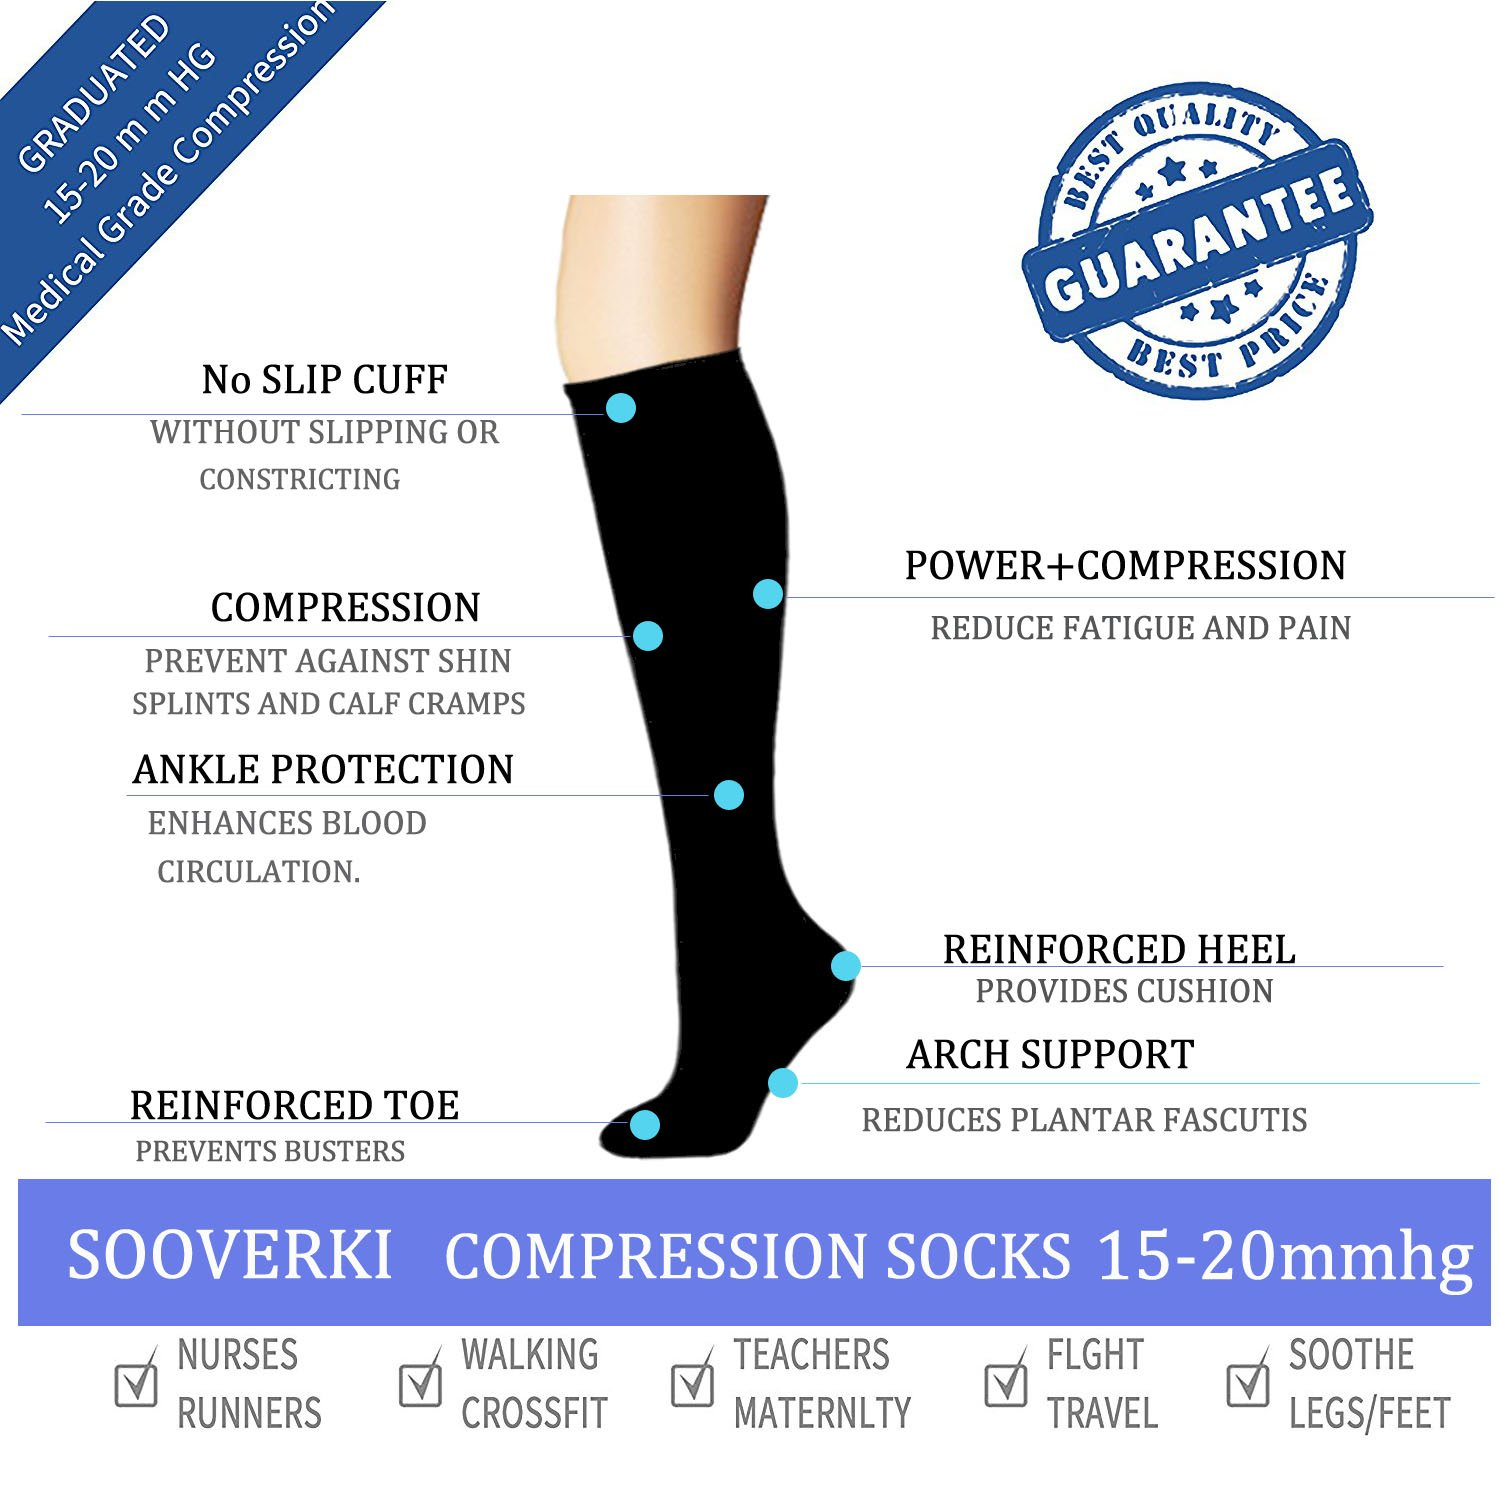 Amazon.com: Compression Socks For Women and Men(6 Pairs)- Best Medical, Nursing- 15-20mmHg: Clothing